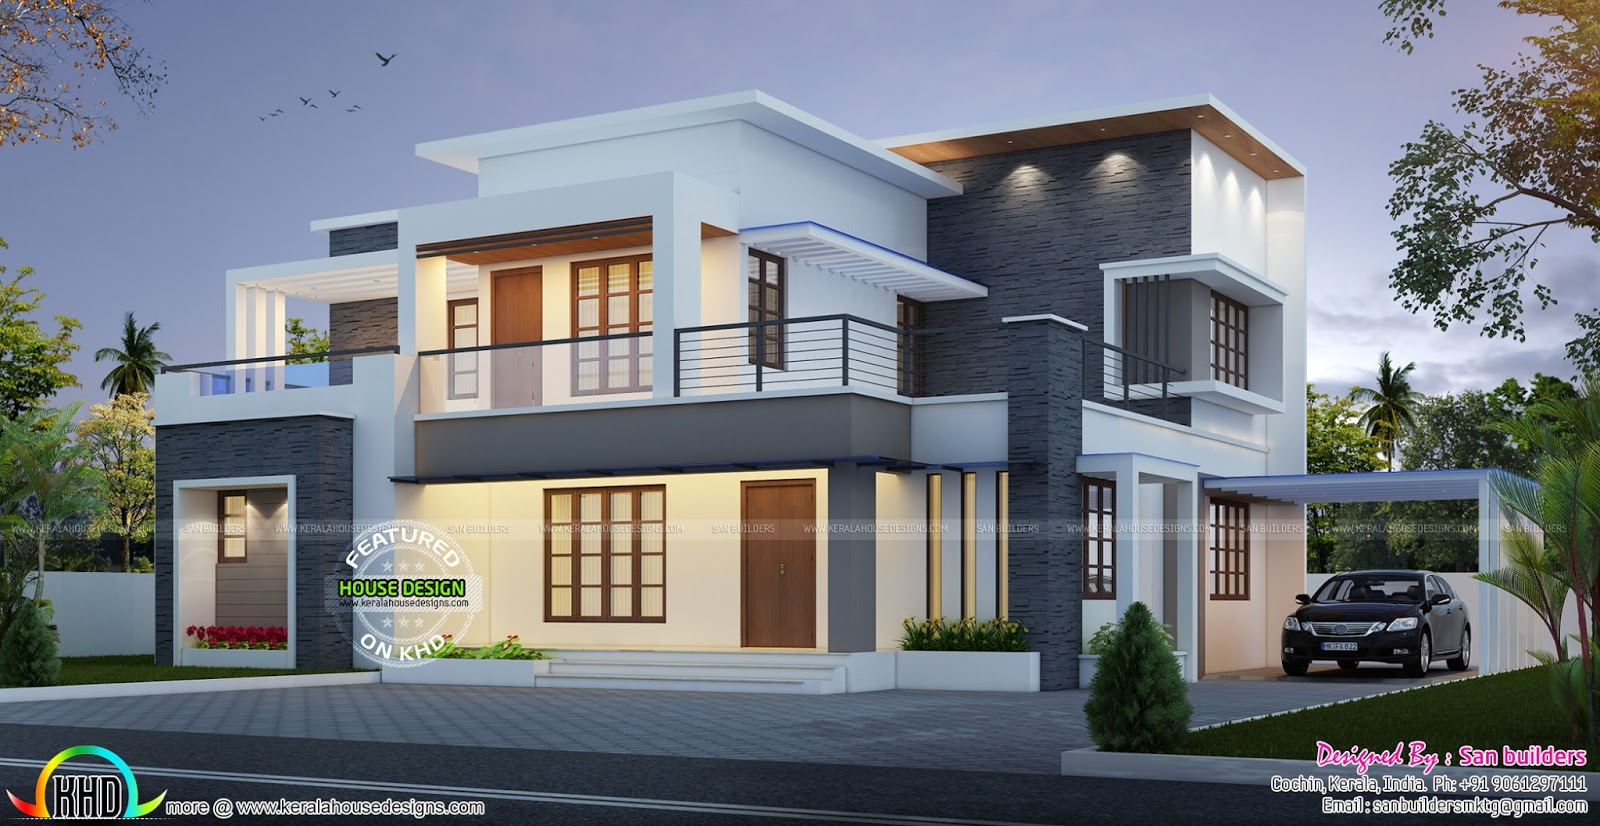 Ground And First Floor Elevation : House plan and elevation by san builders kerala home